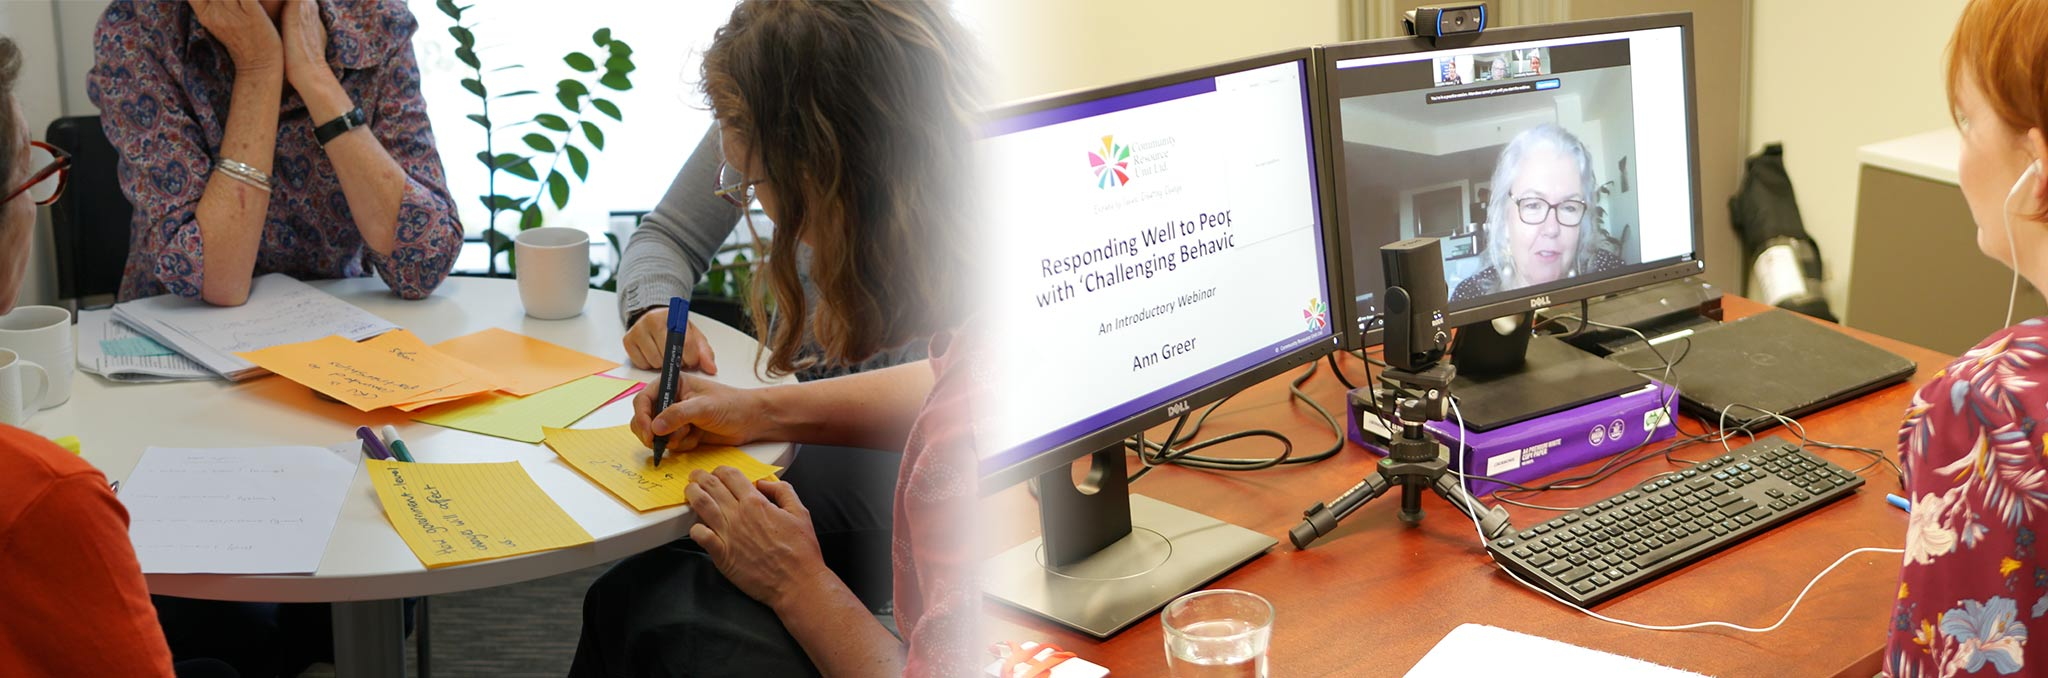 A banner with two images. The first is a group of people at a table writing notes in a planning session. The other is a woman sitting at a computer while hosting a webinar.